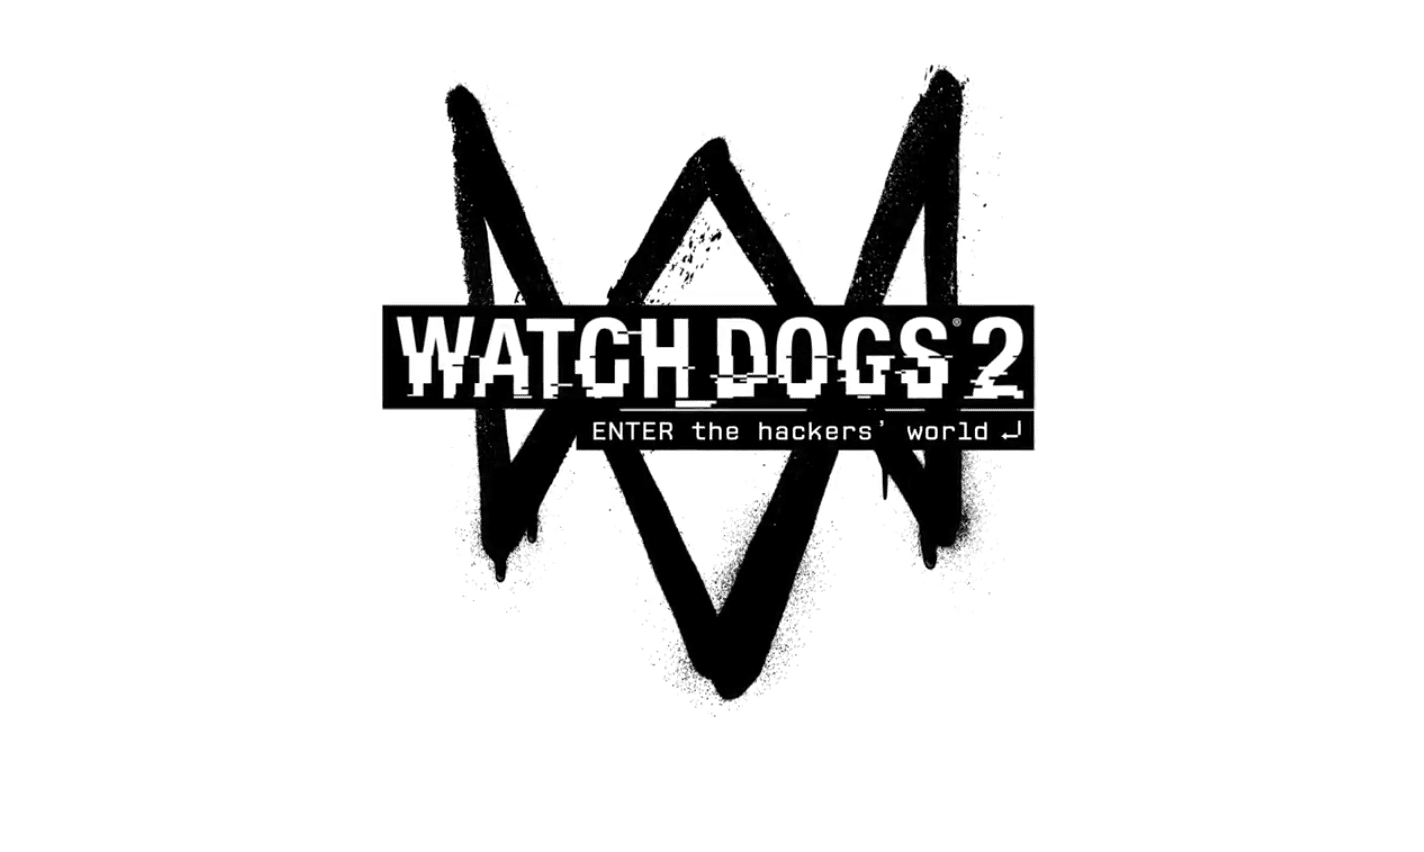 Watch Dogs 2 Trailer Release Date And Gameplay Footage